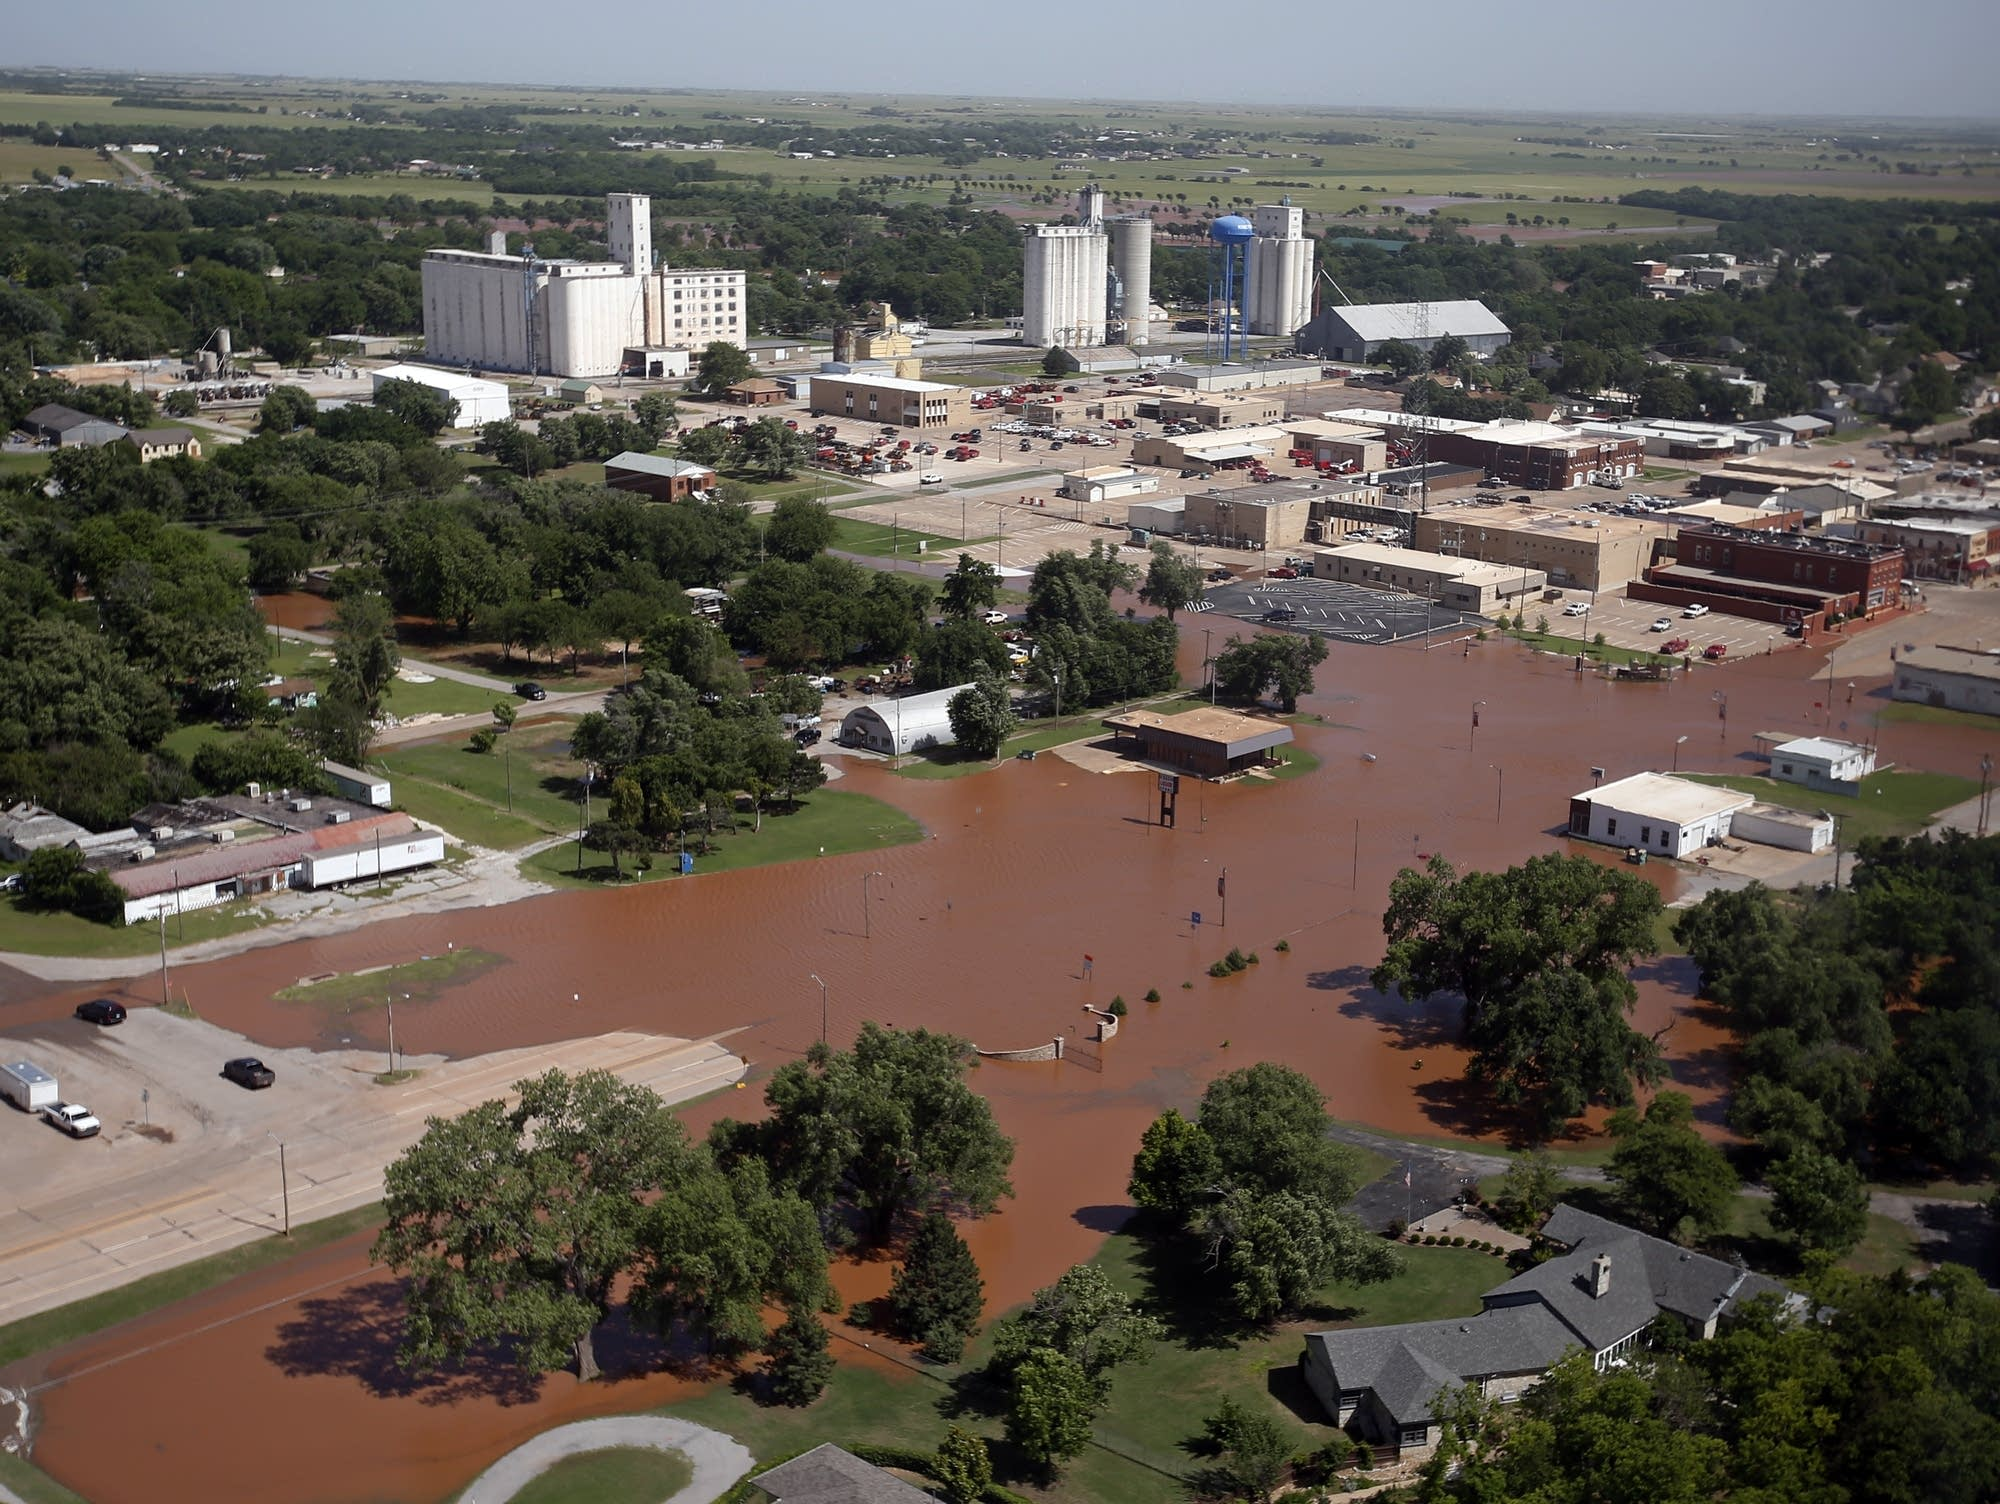 Flooding in Kingfisher, Okla. is pictured Tuesday, May 21, 2019.